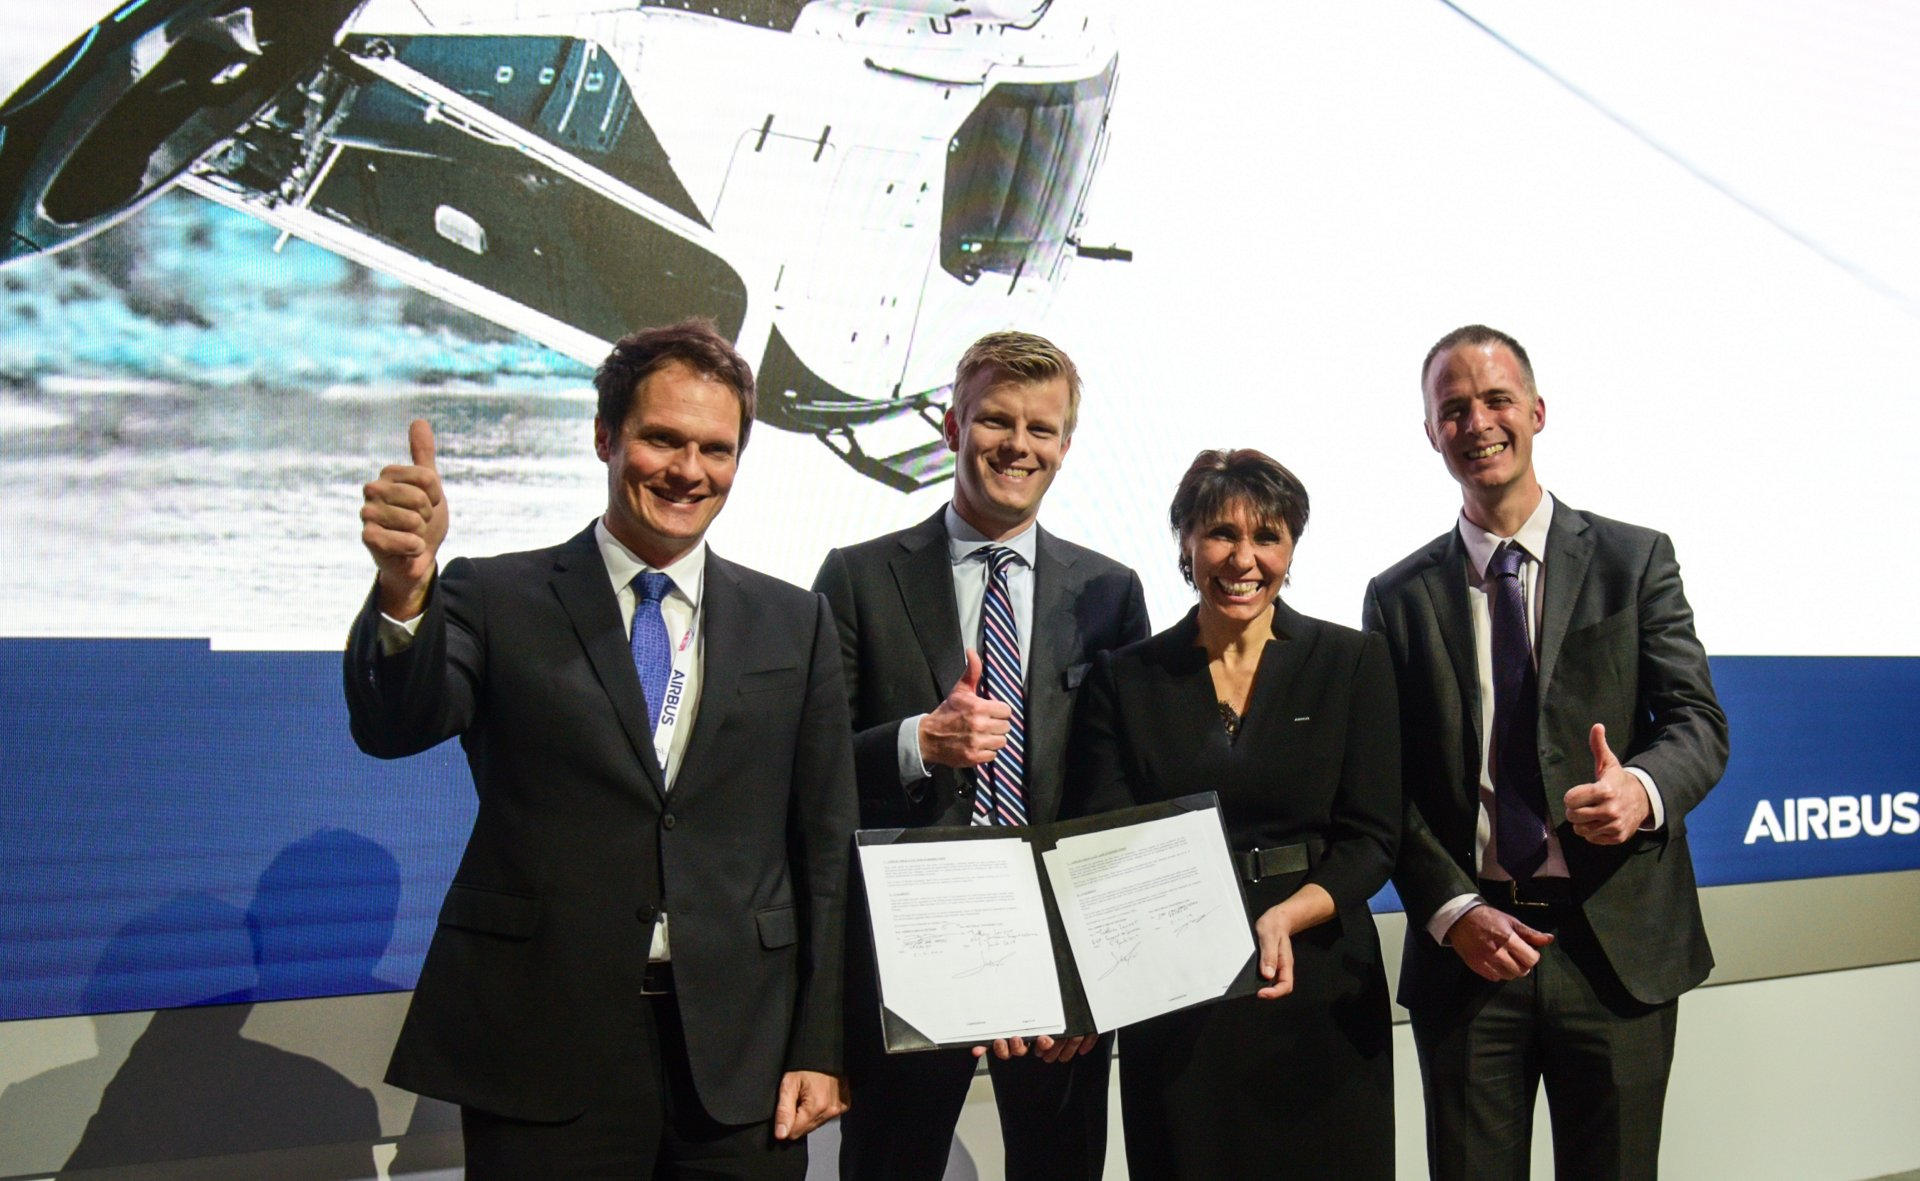 Airbus Helicopters has signed a letter of intent (LOI) with SKYTRAC that will enable helicopters equipped with SKYTRAC real-time data processing and communications hardware to transmit their aircraft and flight data directly to servers on the ground, ensuring the continuous flow of data from the air to the ground for analysis.